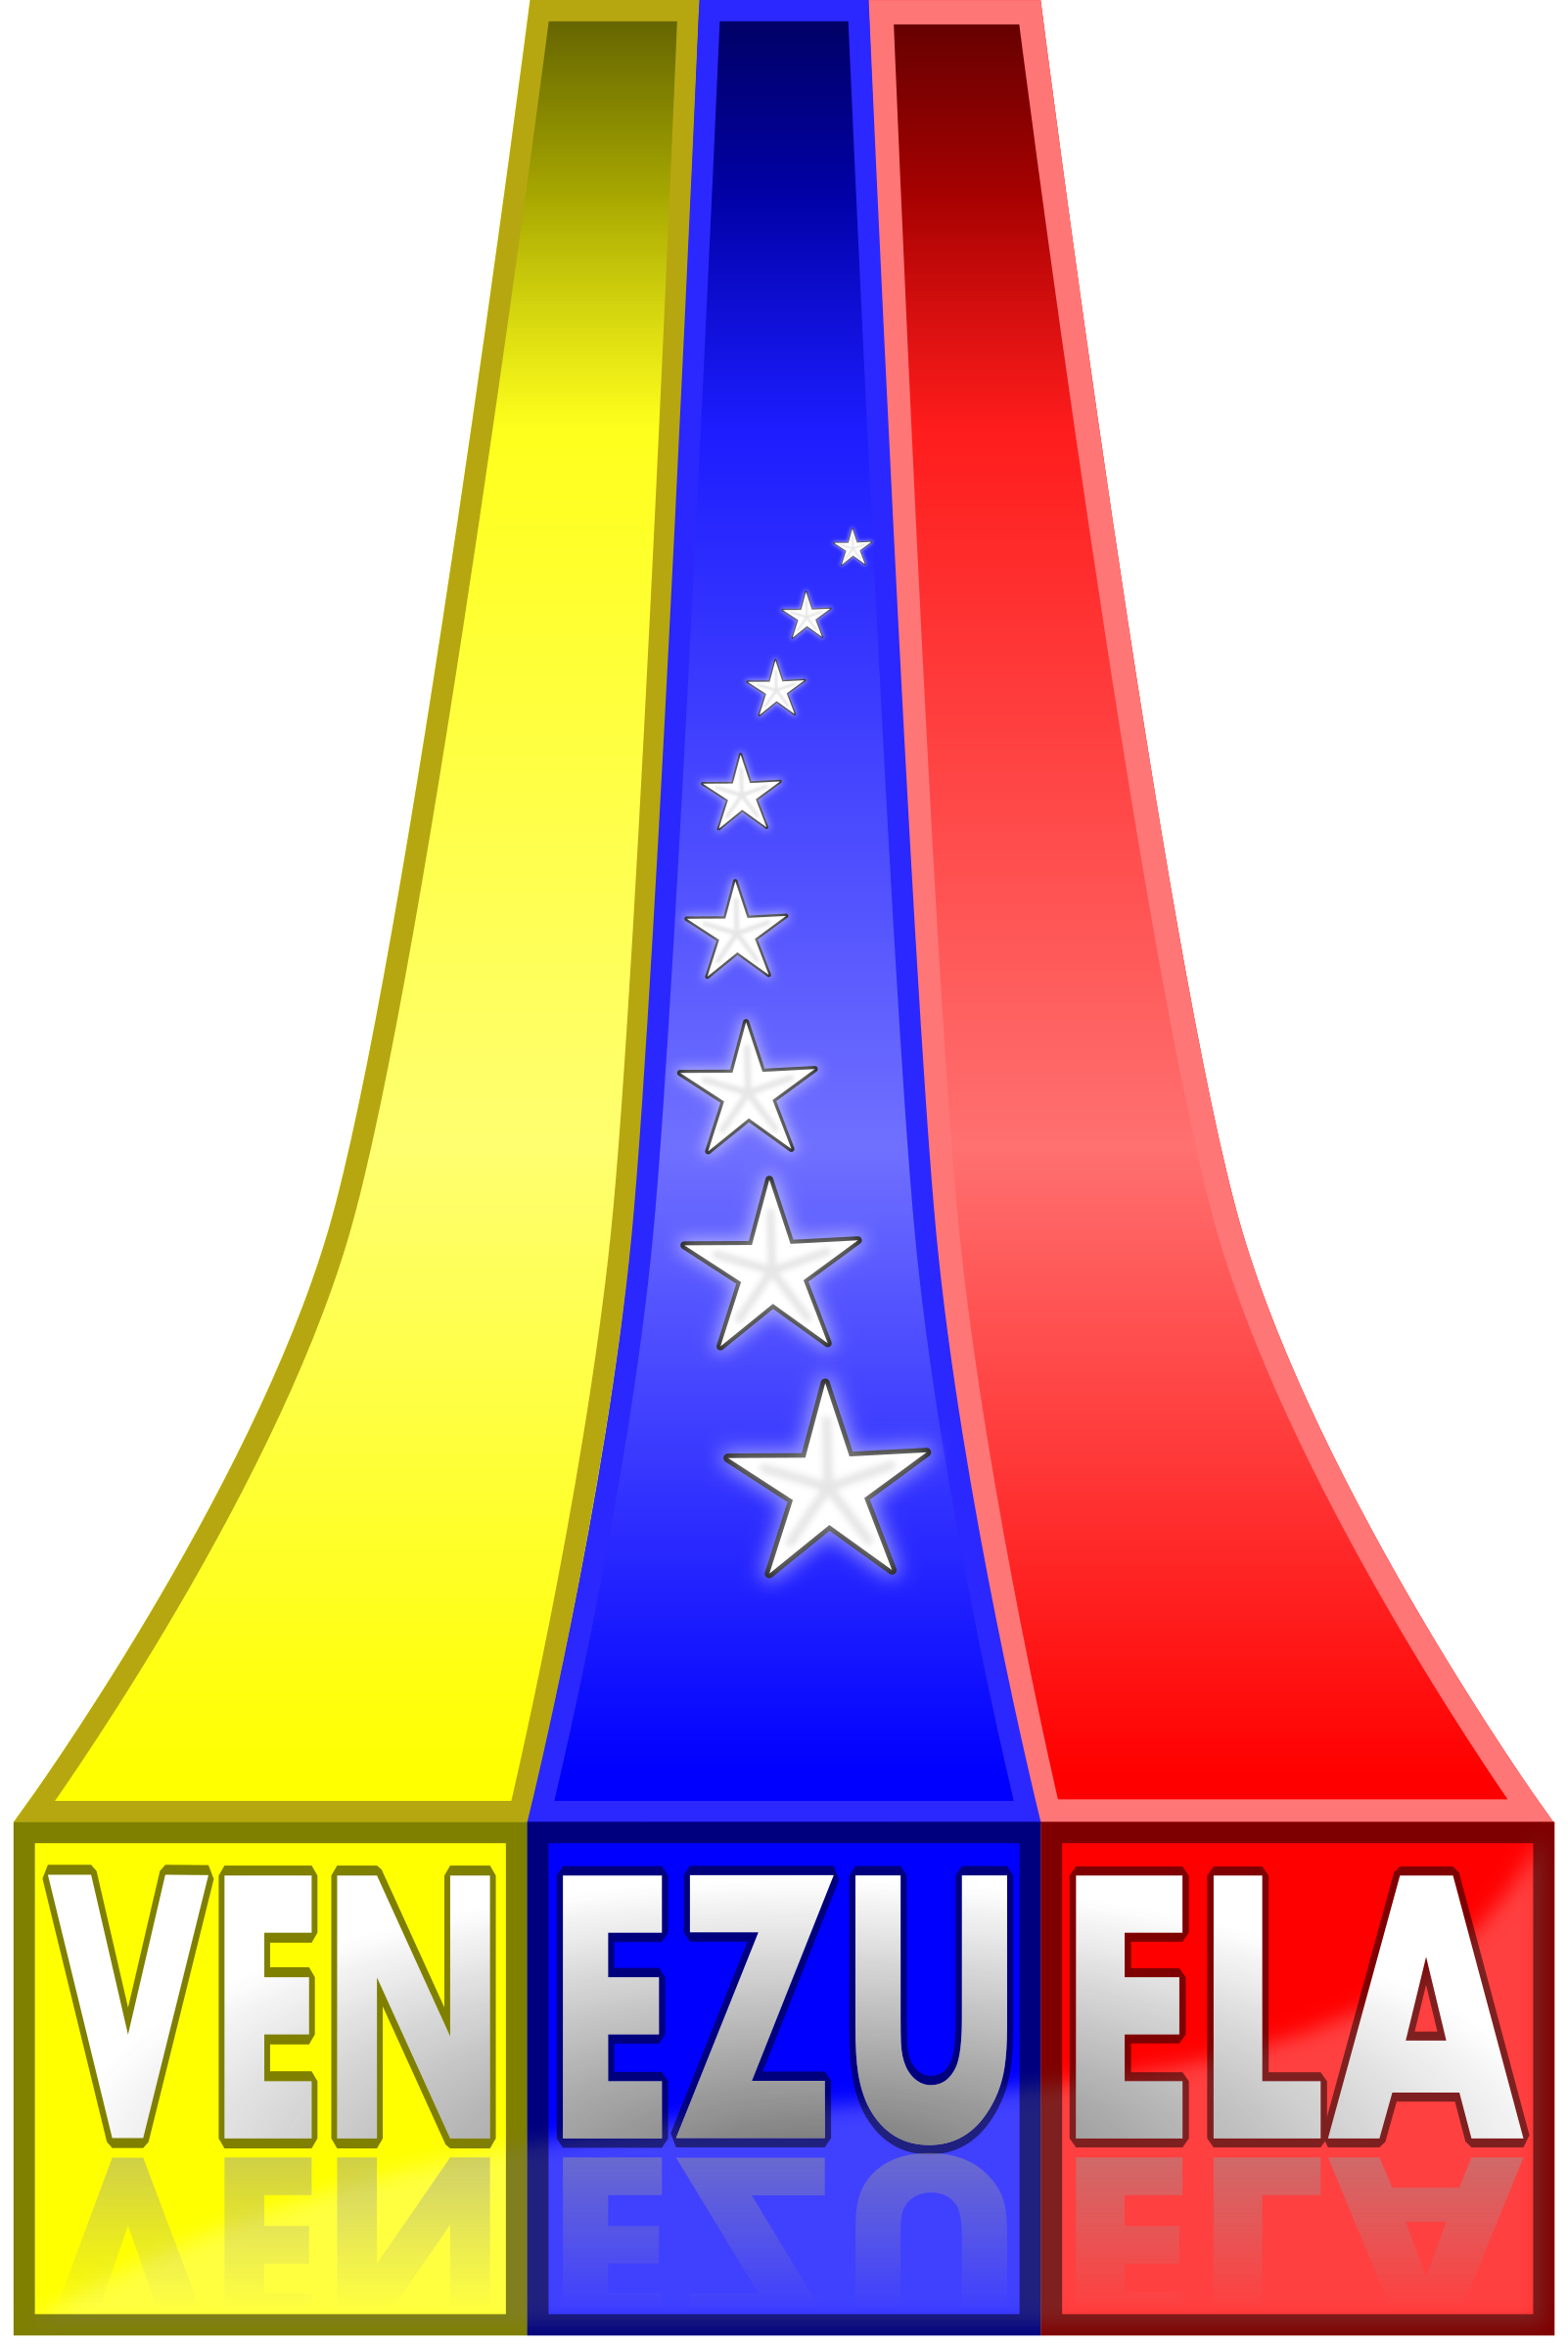 Venezuela by deiby_ybied